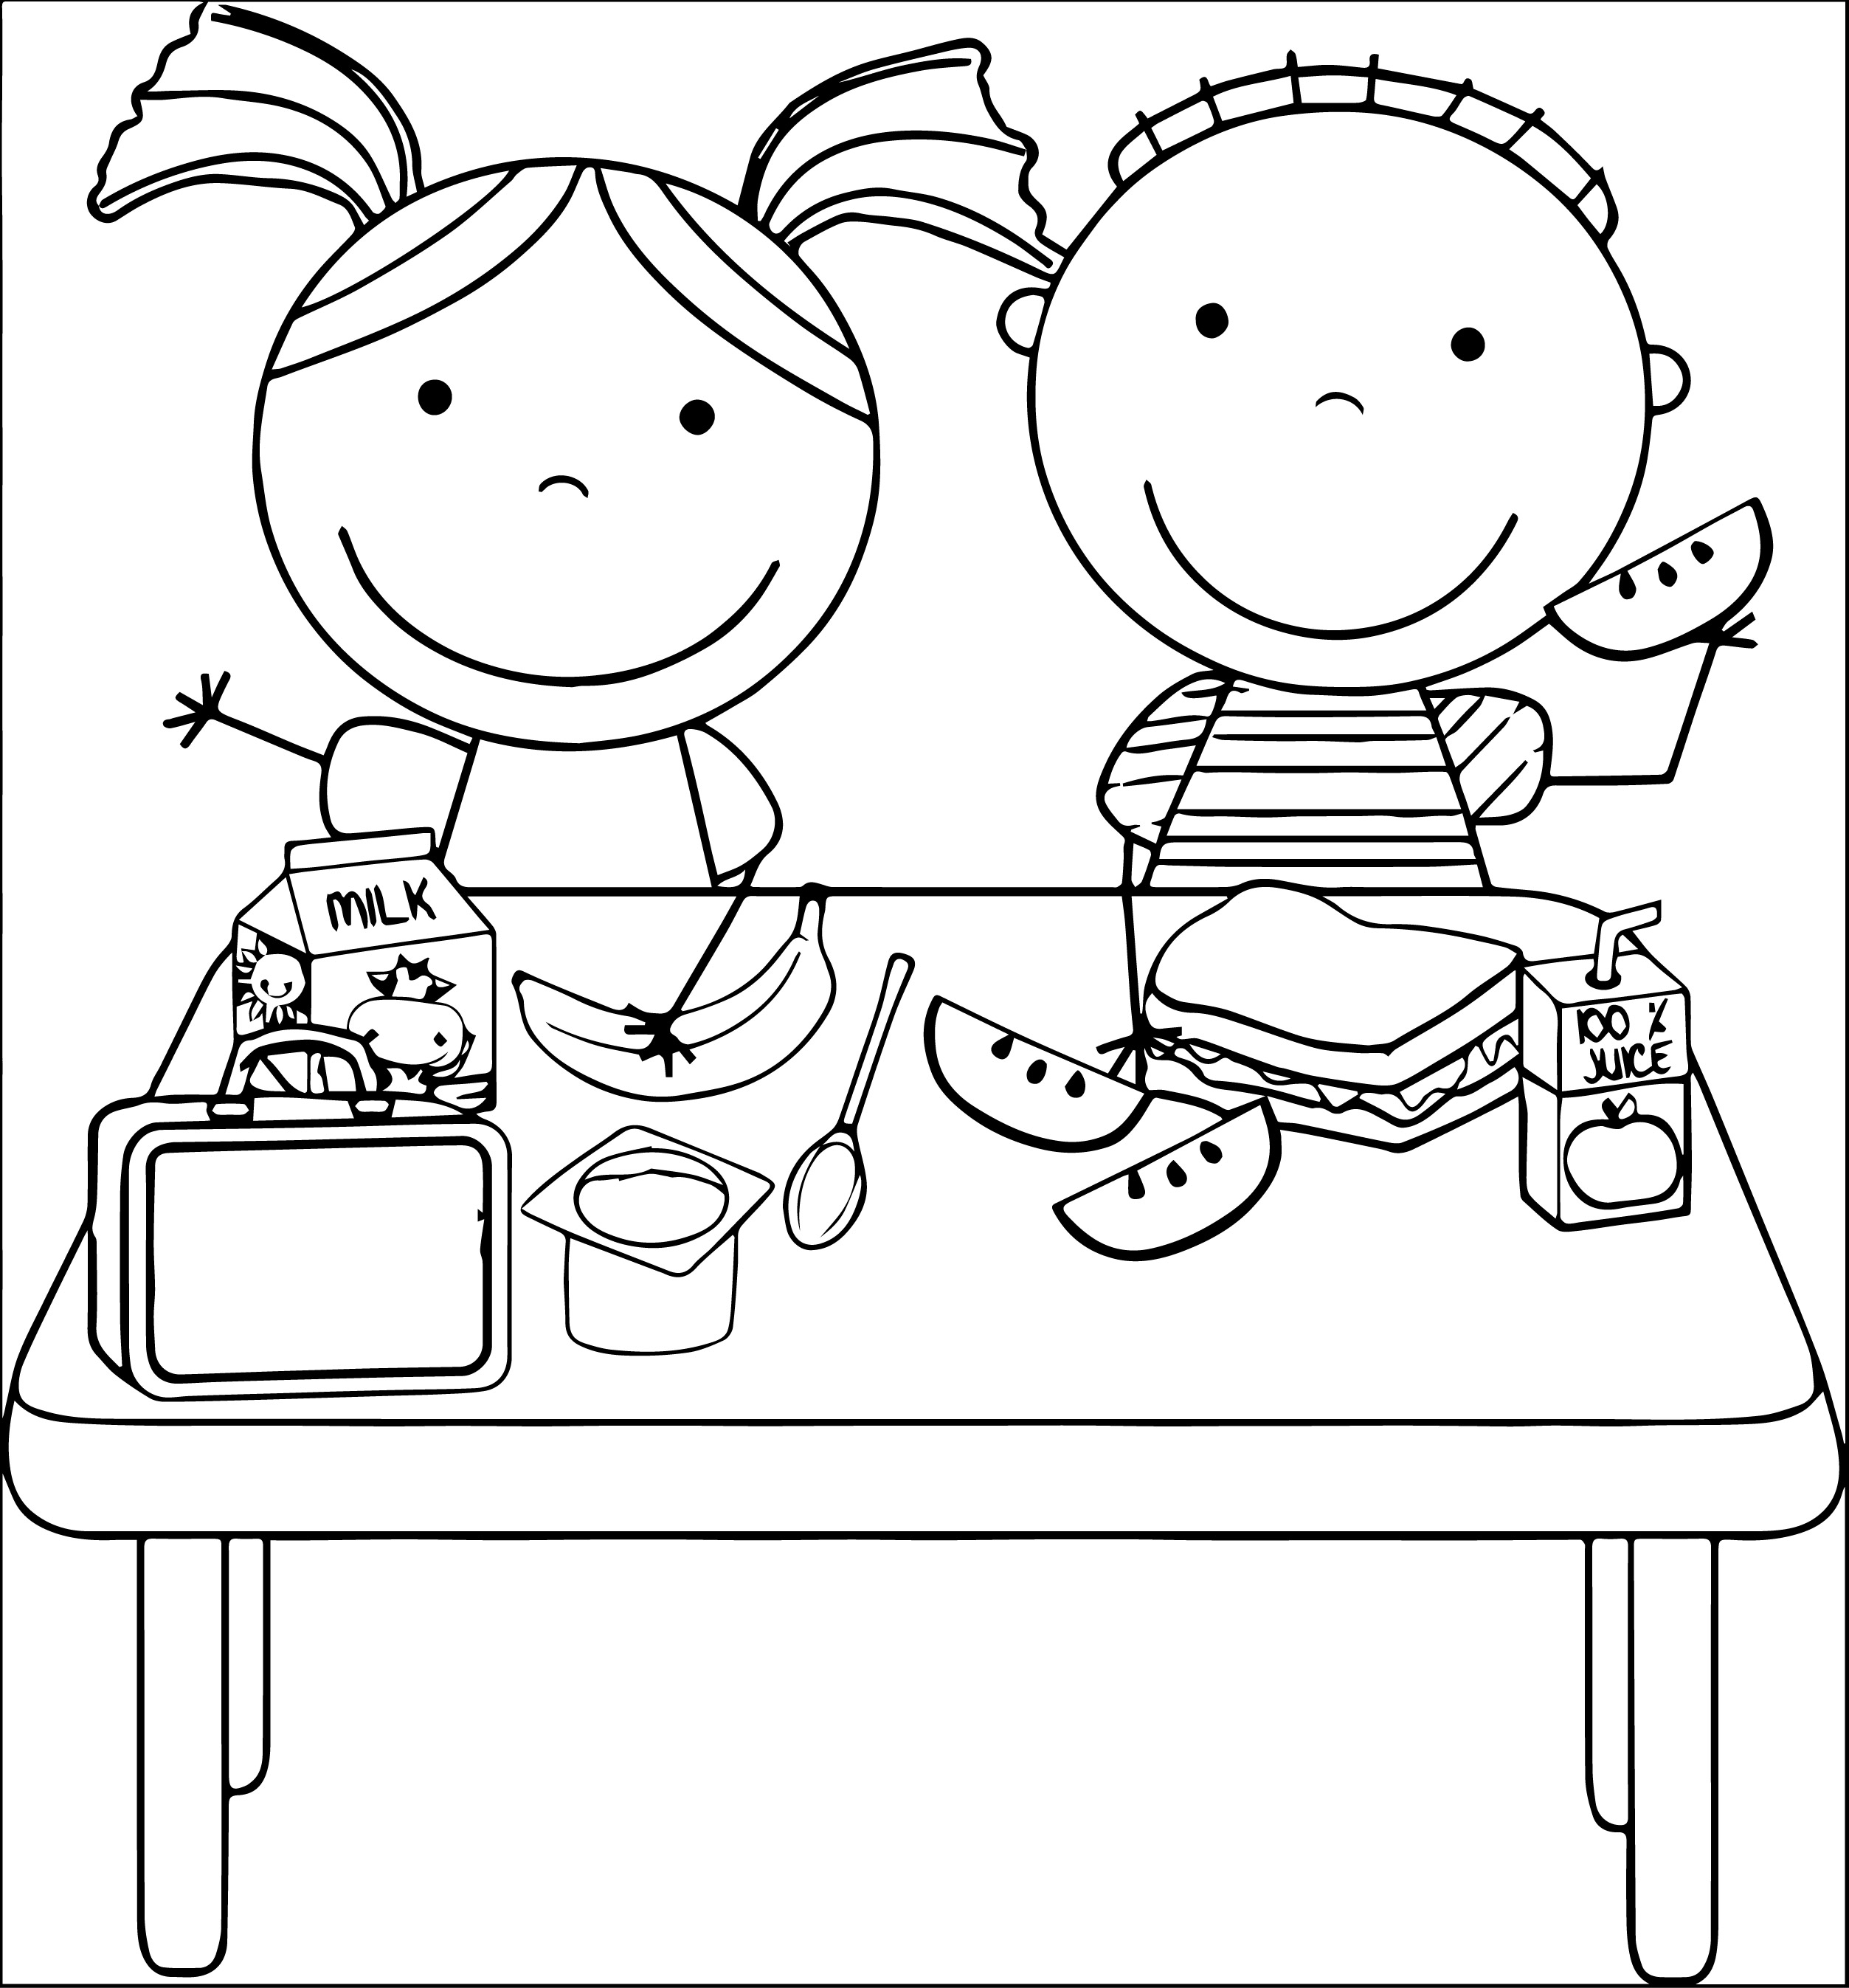 Cafeteria clipart black and white.  collection of school